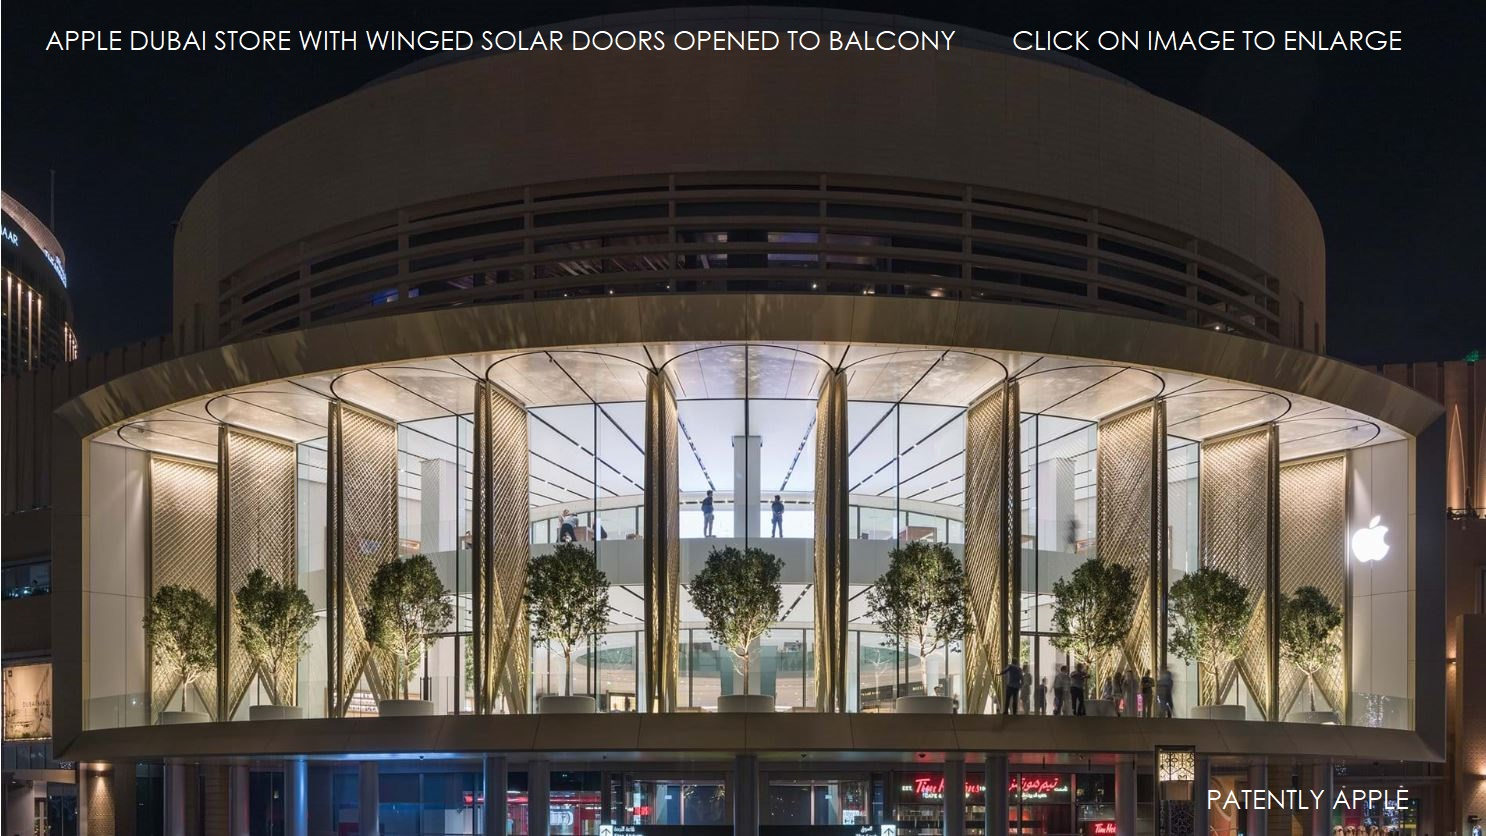 photo image The Apple Store in Dubai Mall is a Wondrous Design and new Jumbo Photos of it are now Available